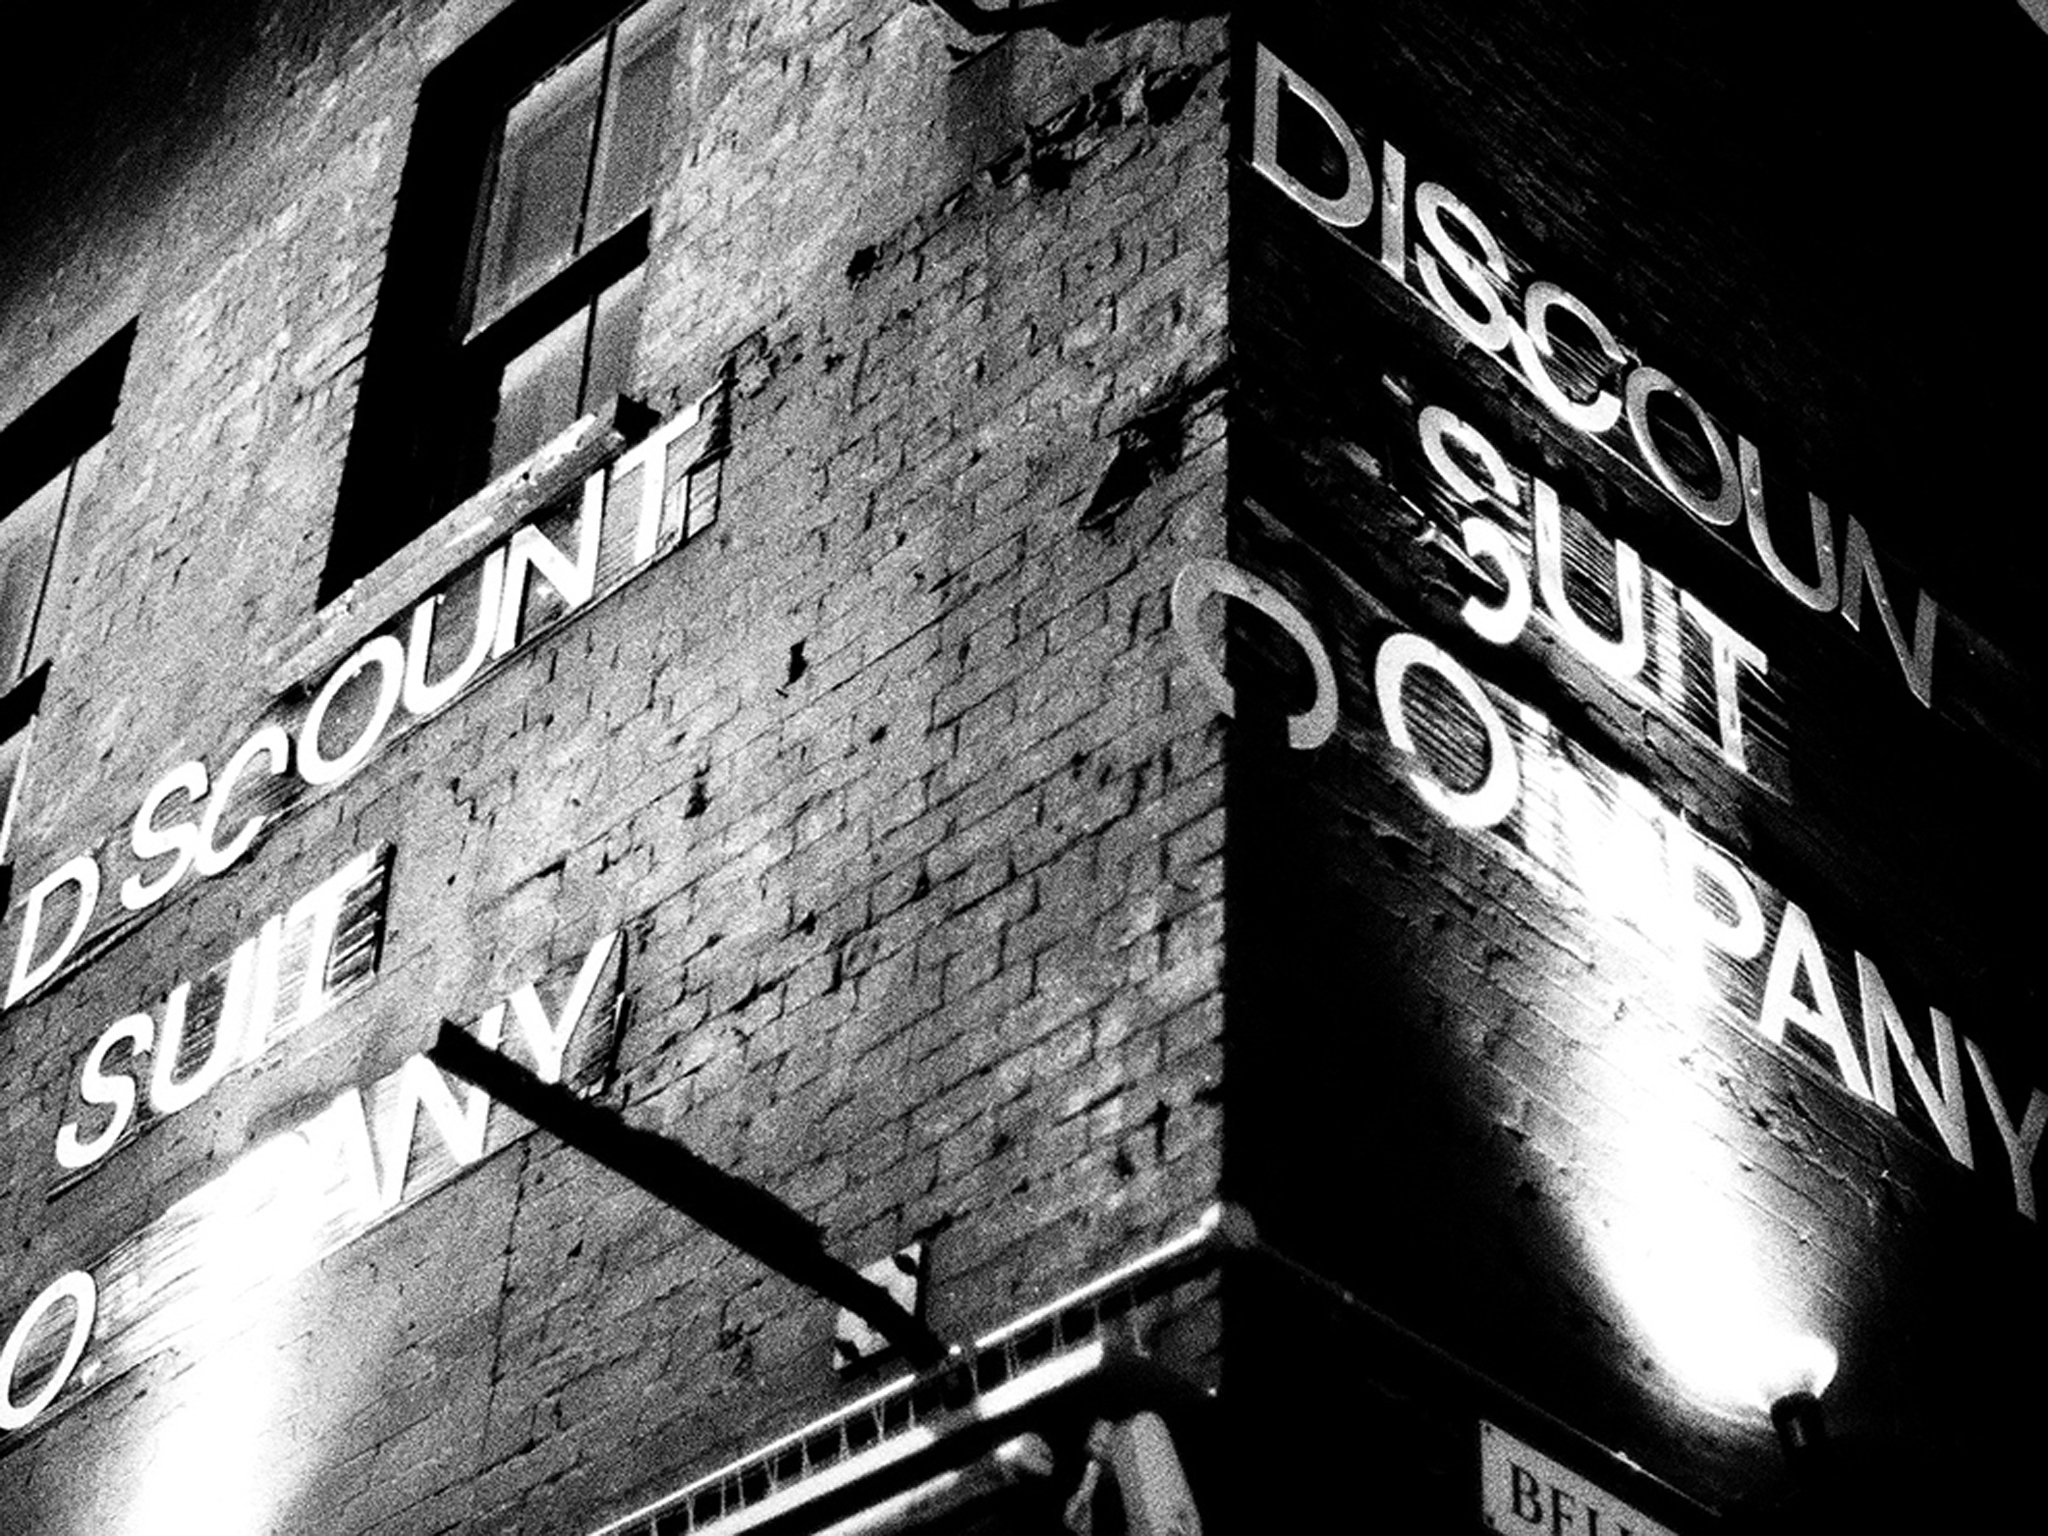 discount suit company, secret bars in london